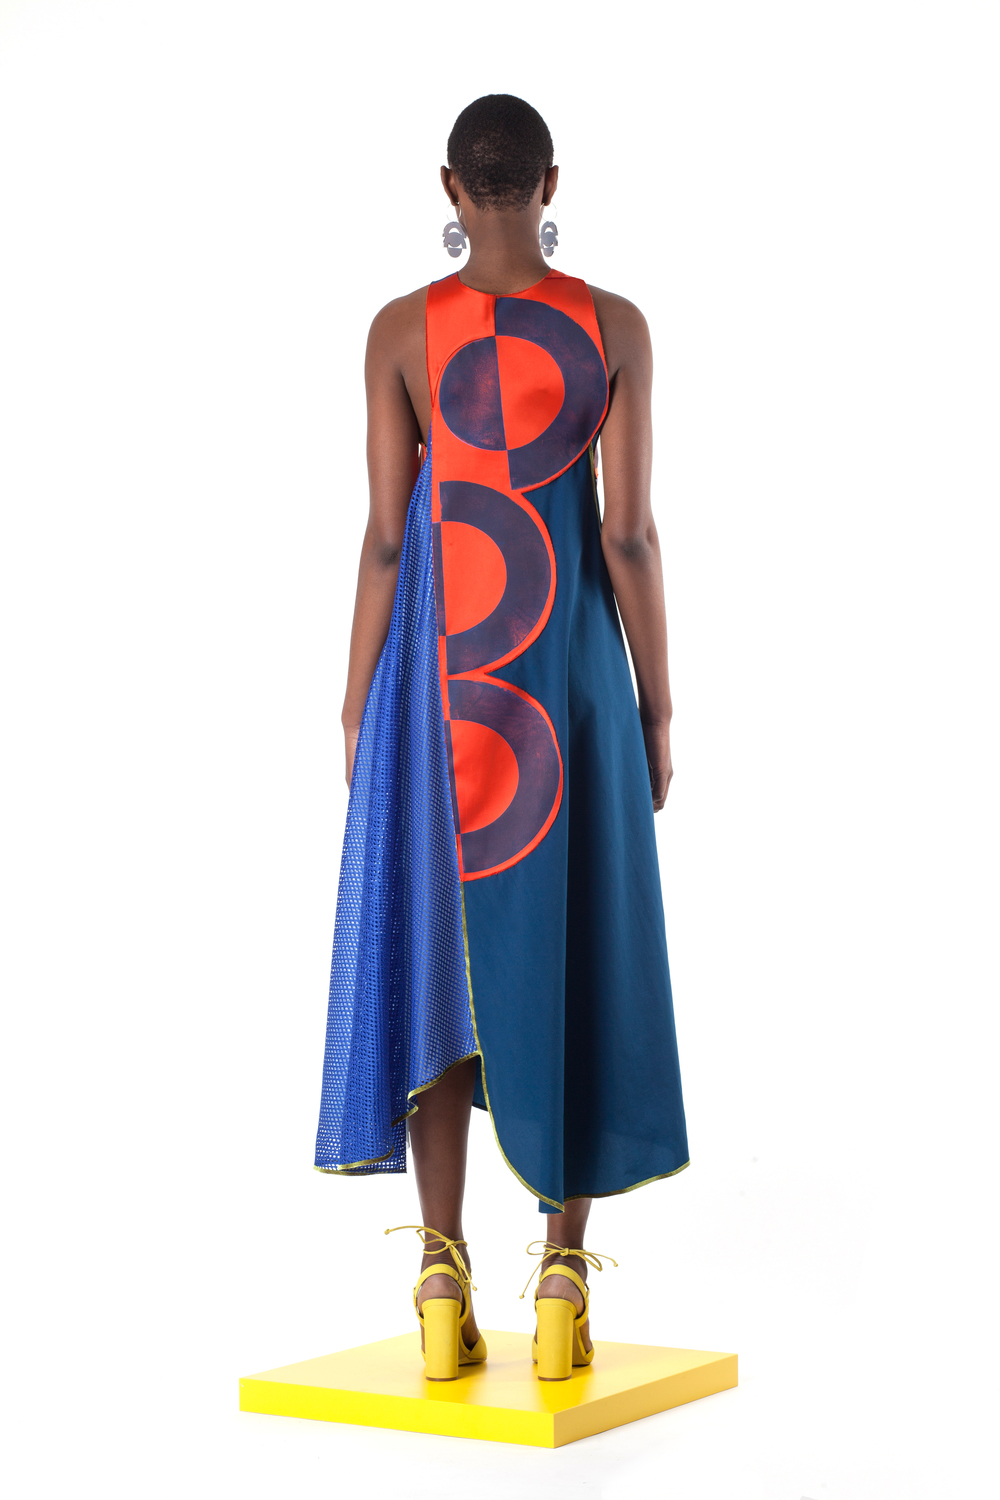 Block Printed Poly Double Faced Duchess Satin, Mesh, Nylon, and Velvet Dress with Laser Cut Earrings